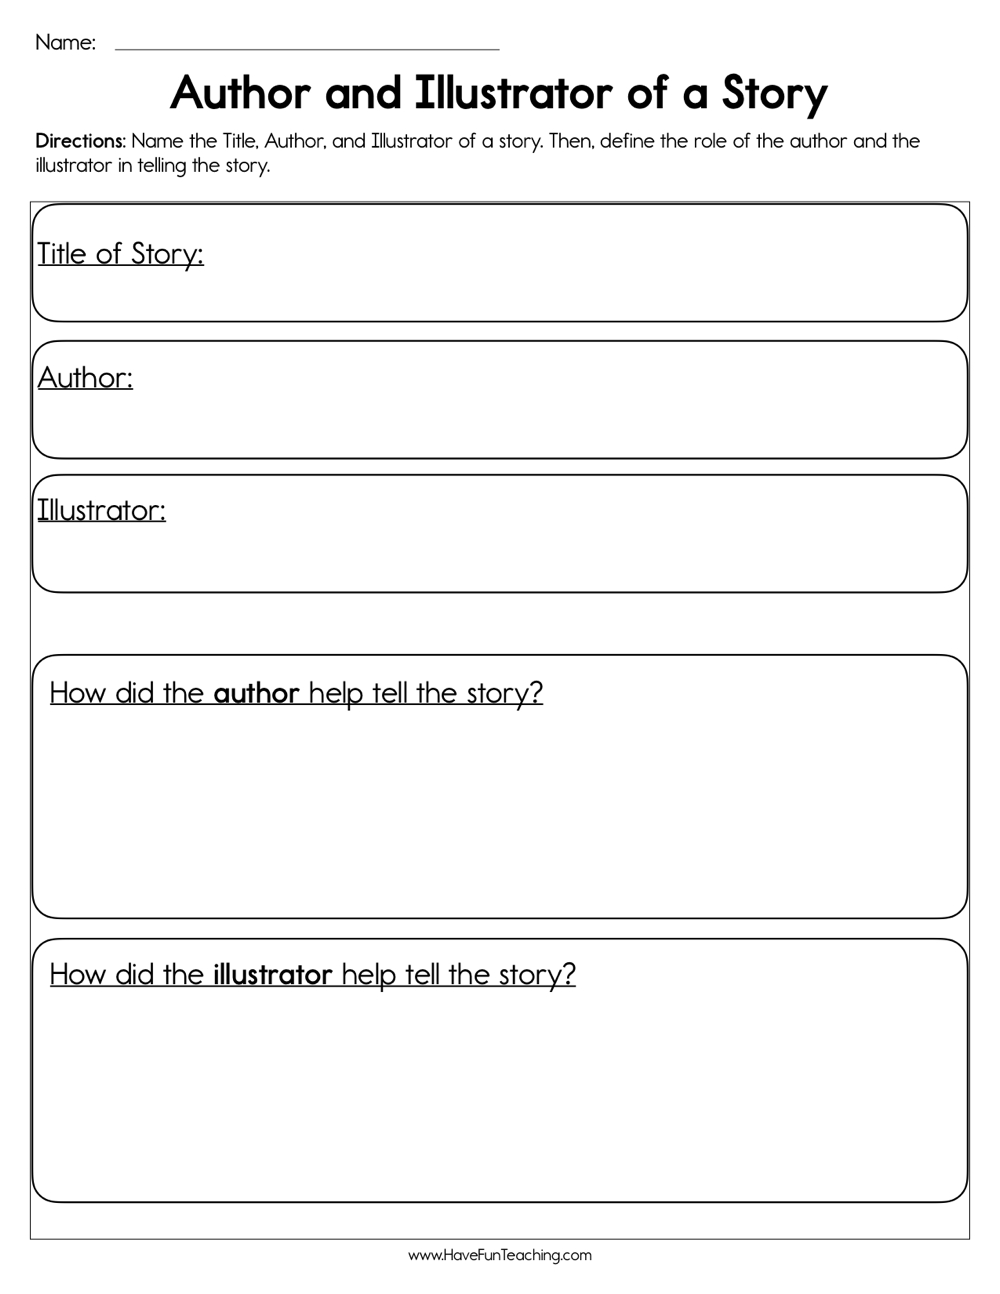 medium resolution of Author and Illustrator of a Story Worksheet • Have Fun Teaching